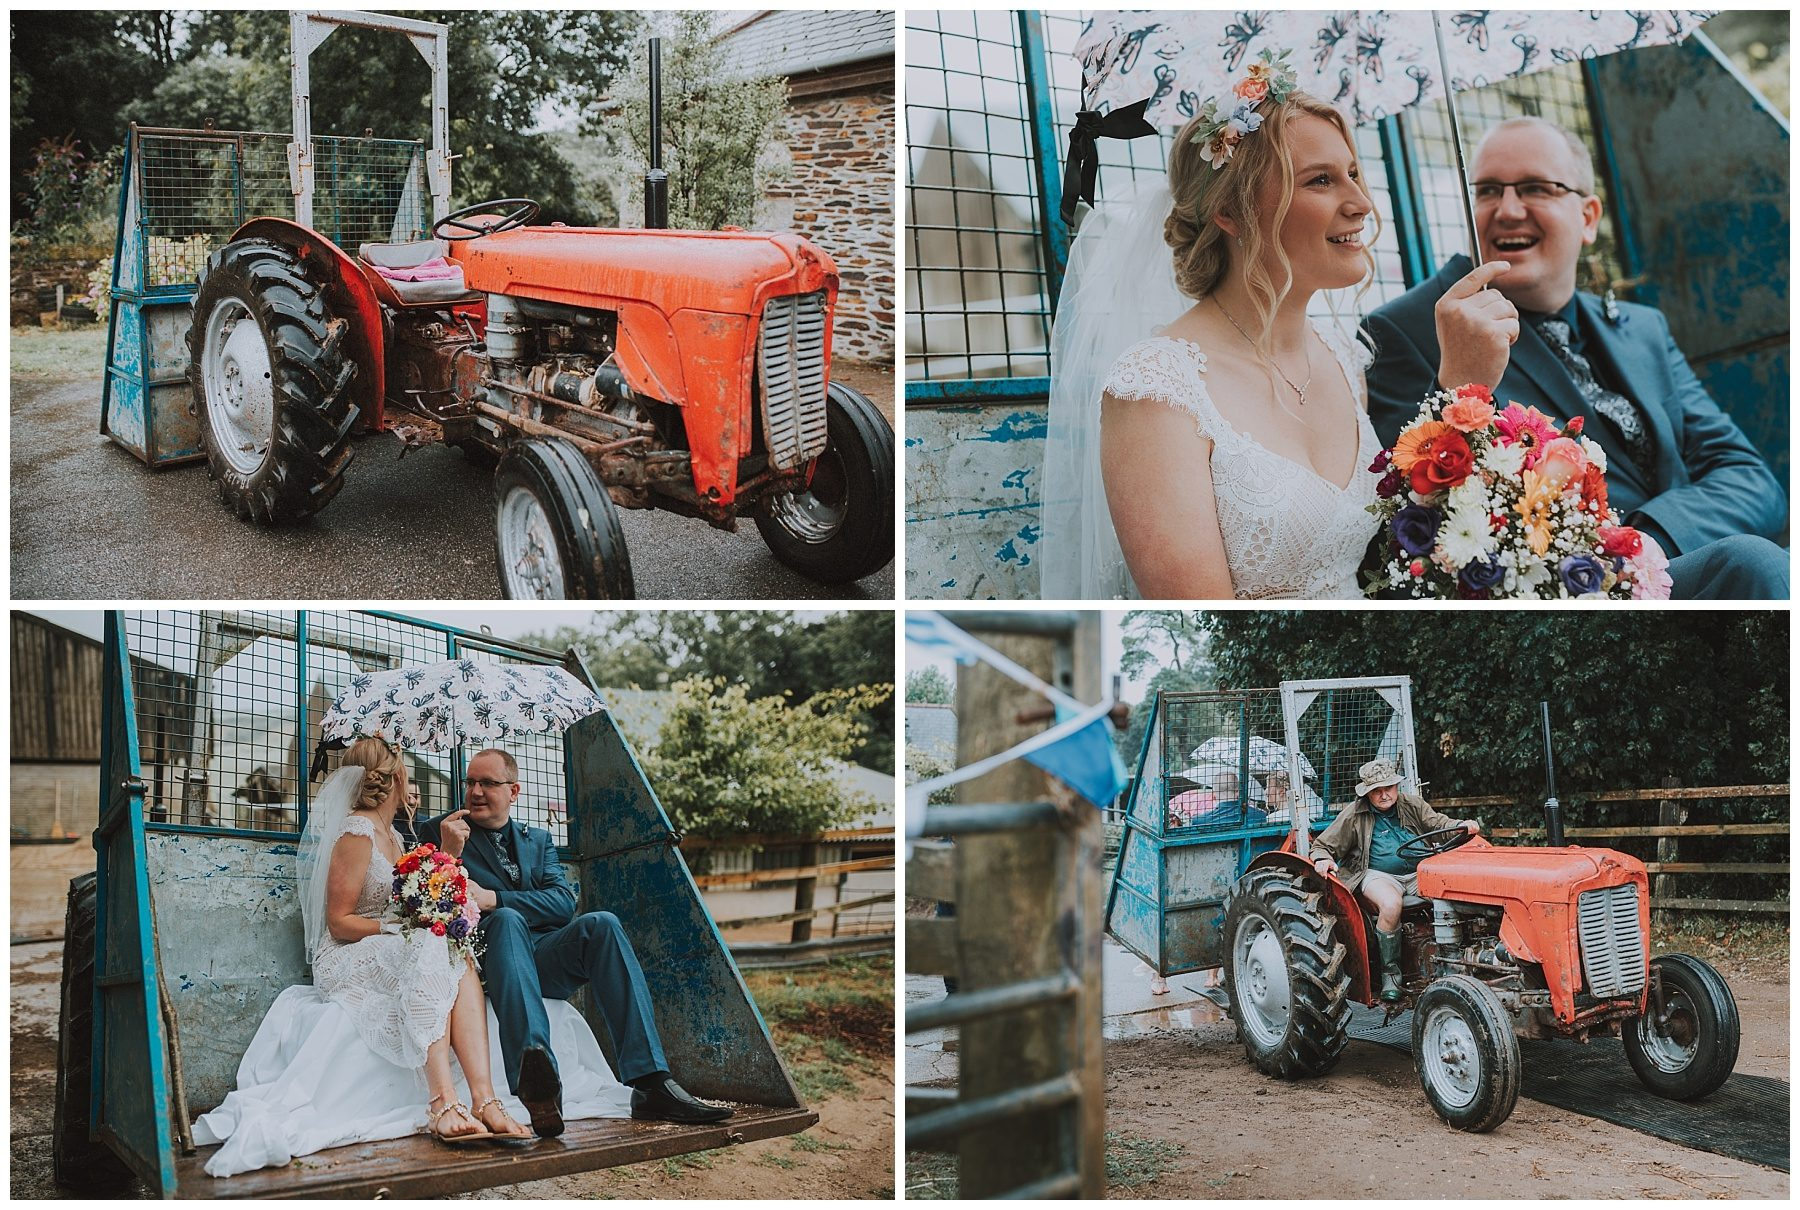 Tractor transport for Bride